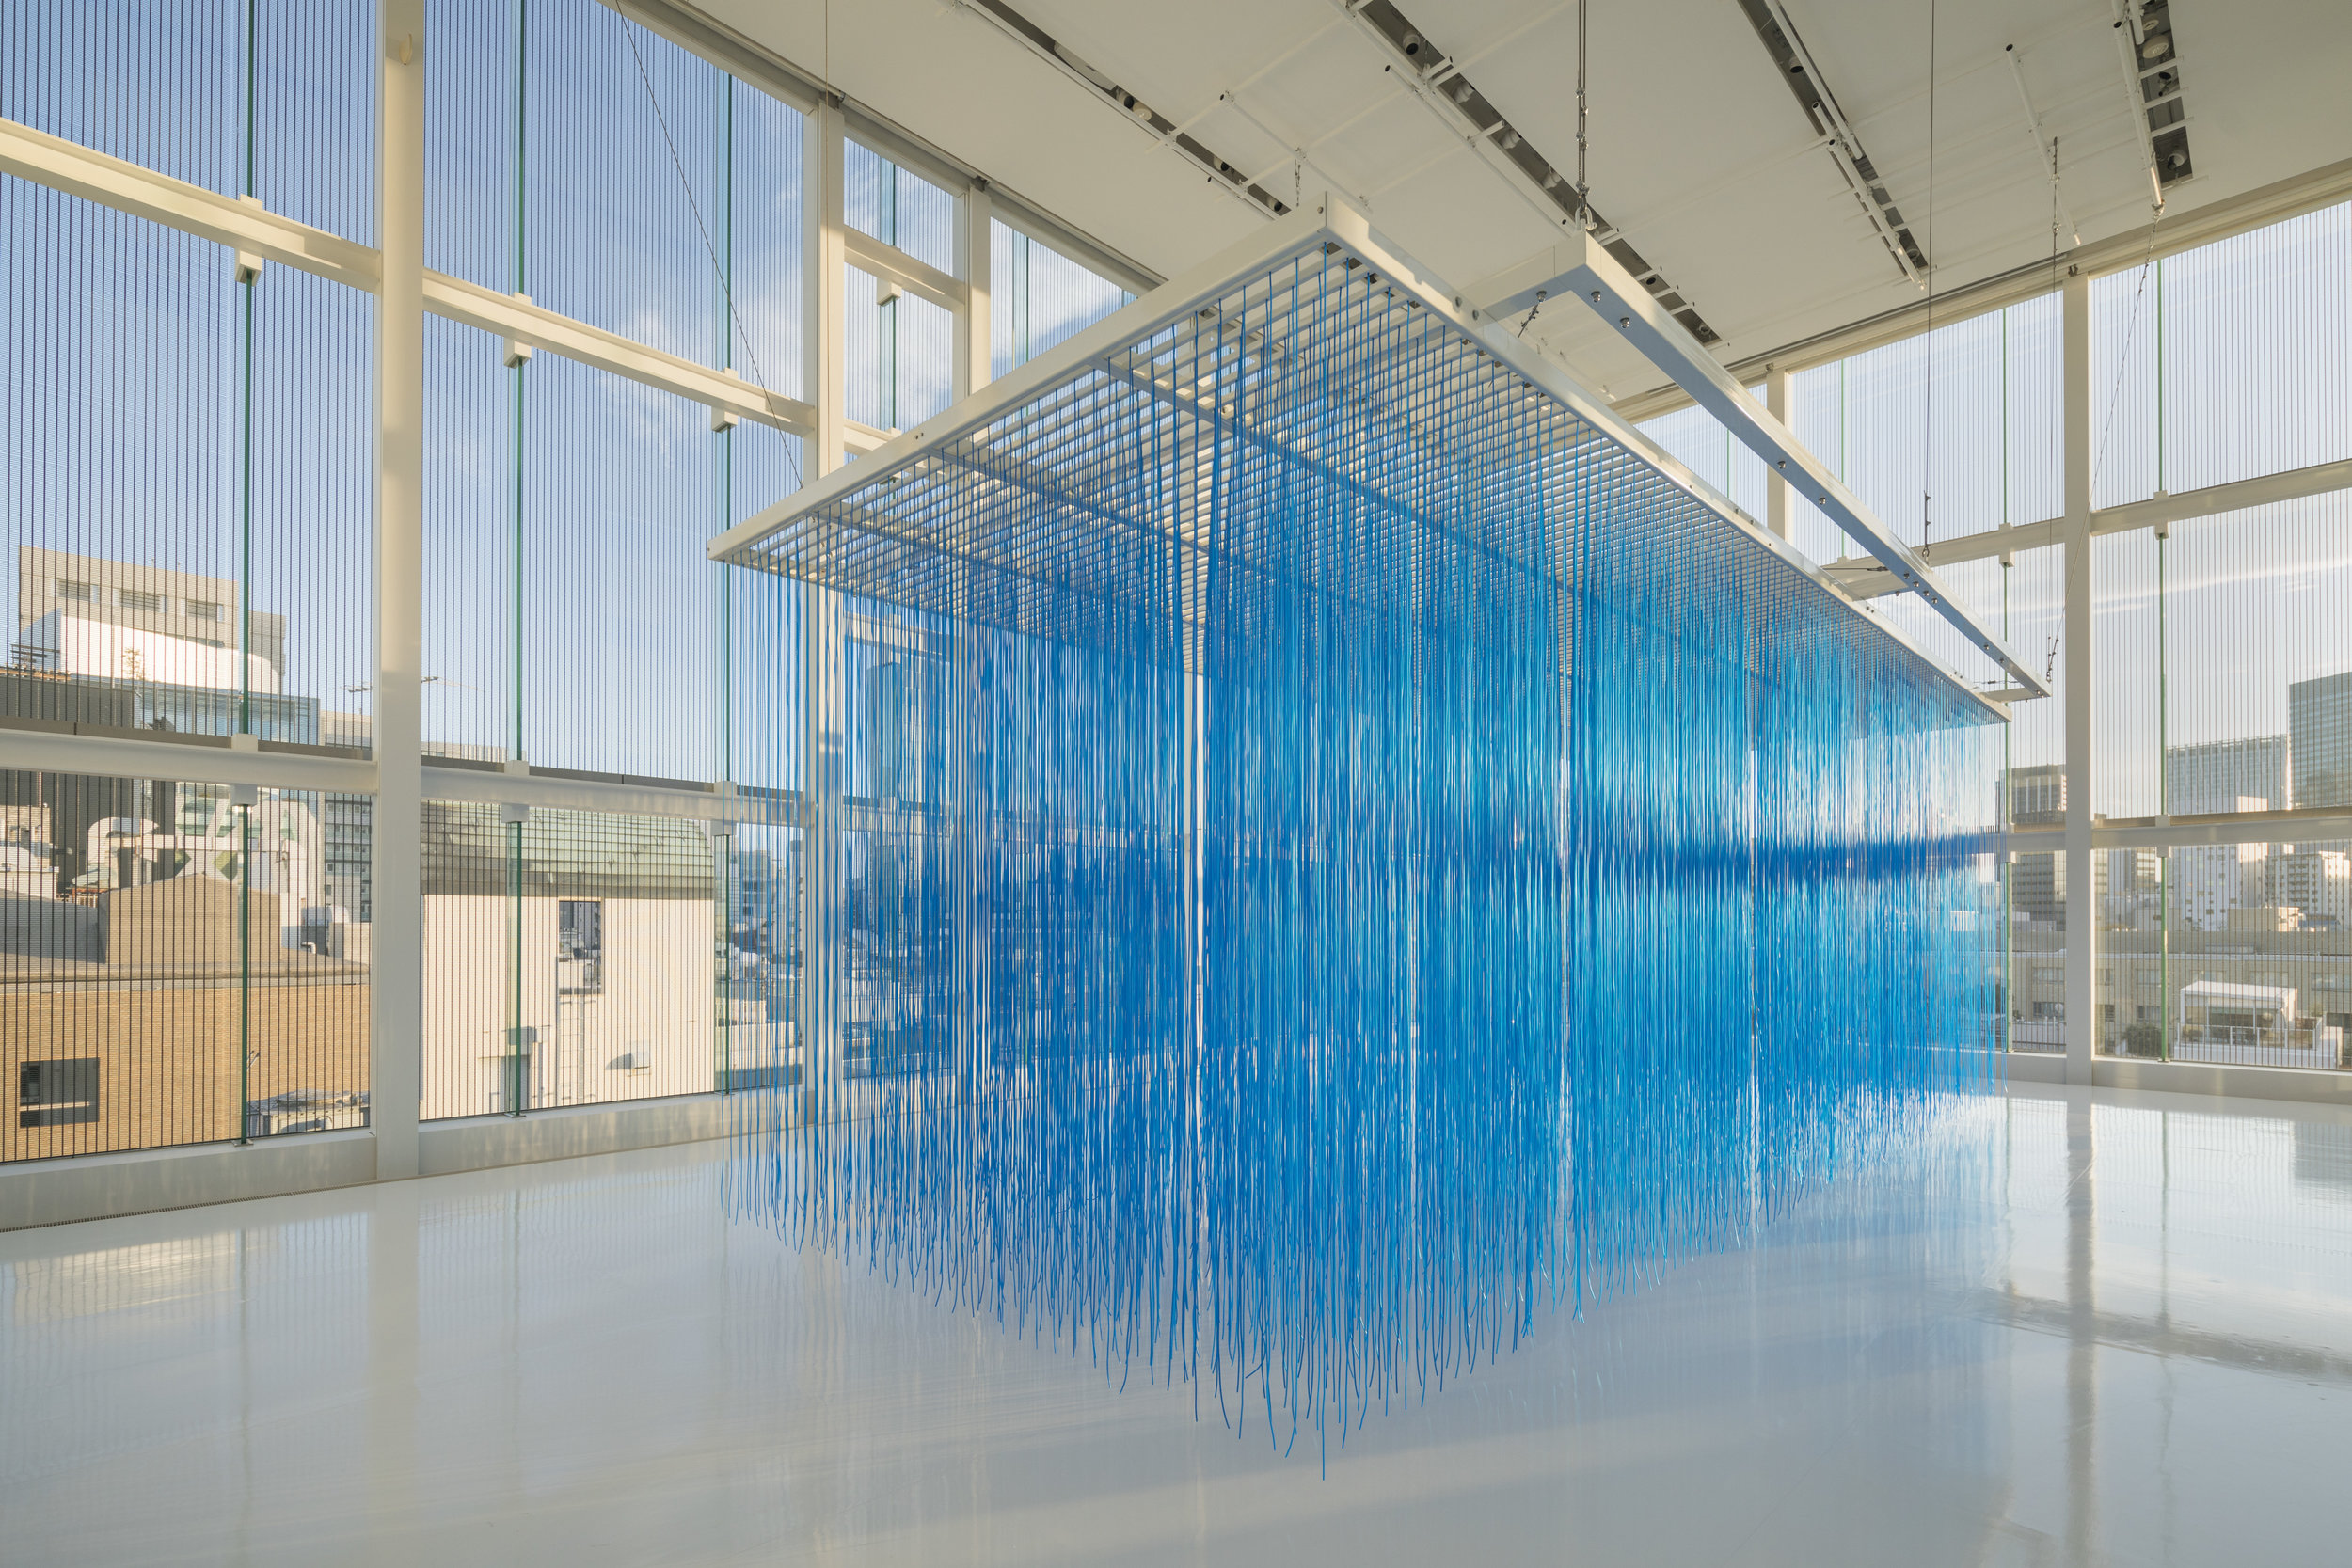 Jesús Rafael Soto  Pénétrable BBL bleu,    1999 (exhibition view at Espace Louis Vuitton Tokyo)  Painted aluminium, PVC tubes 366.5 x 1400 x 470.5 cm Collection Fondation Louis Vuitton, Paris. © Adagp, Paris 2019 Picture: © Jeremie Souteyrat / Louis Vuitton